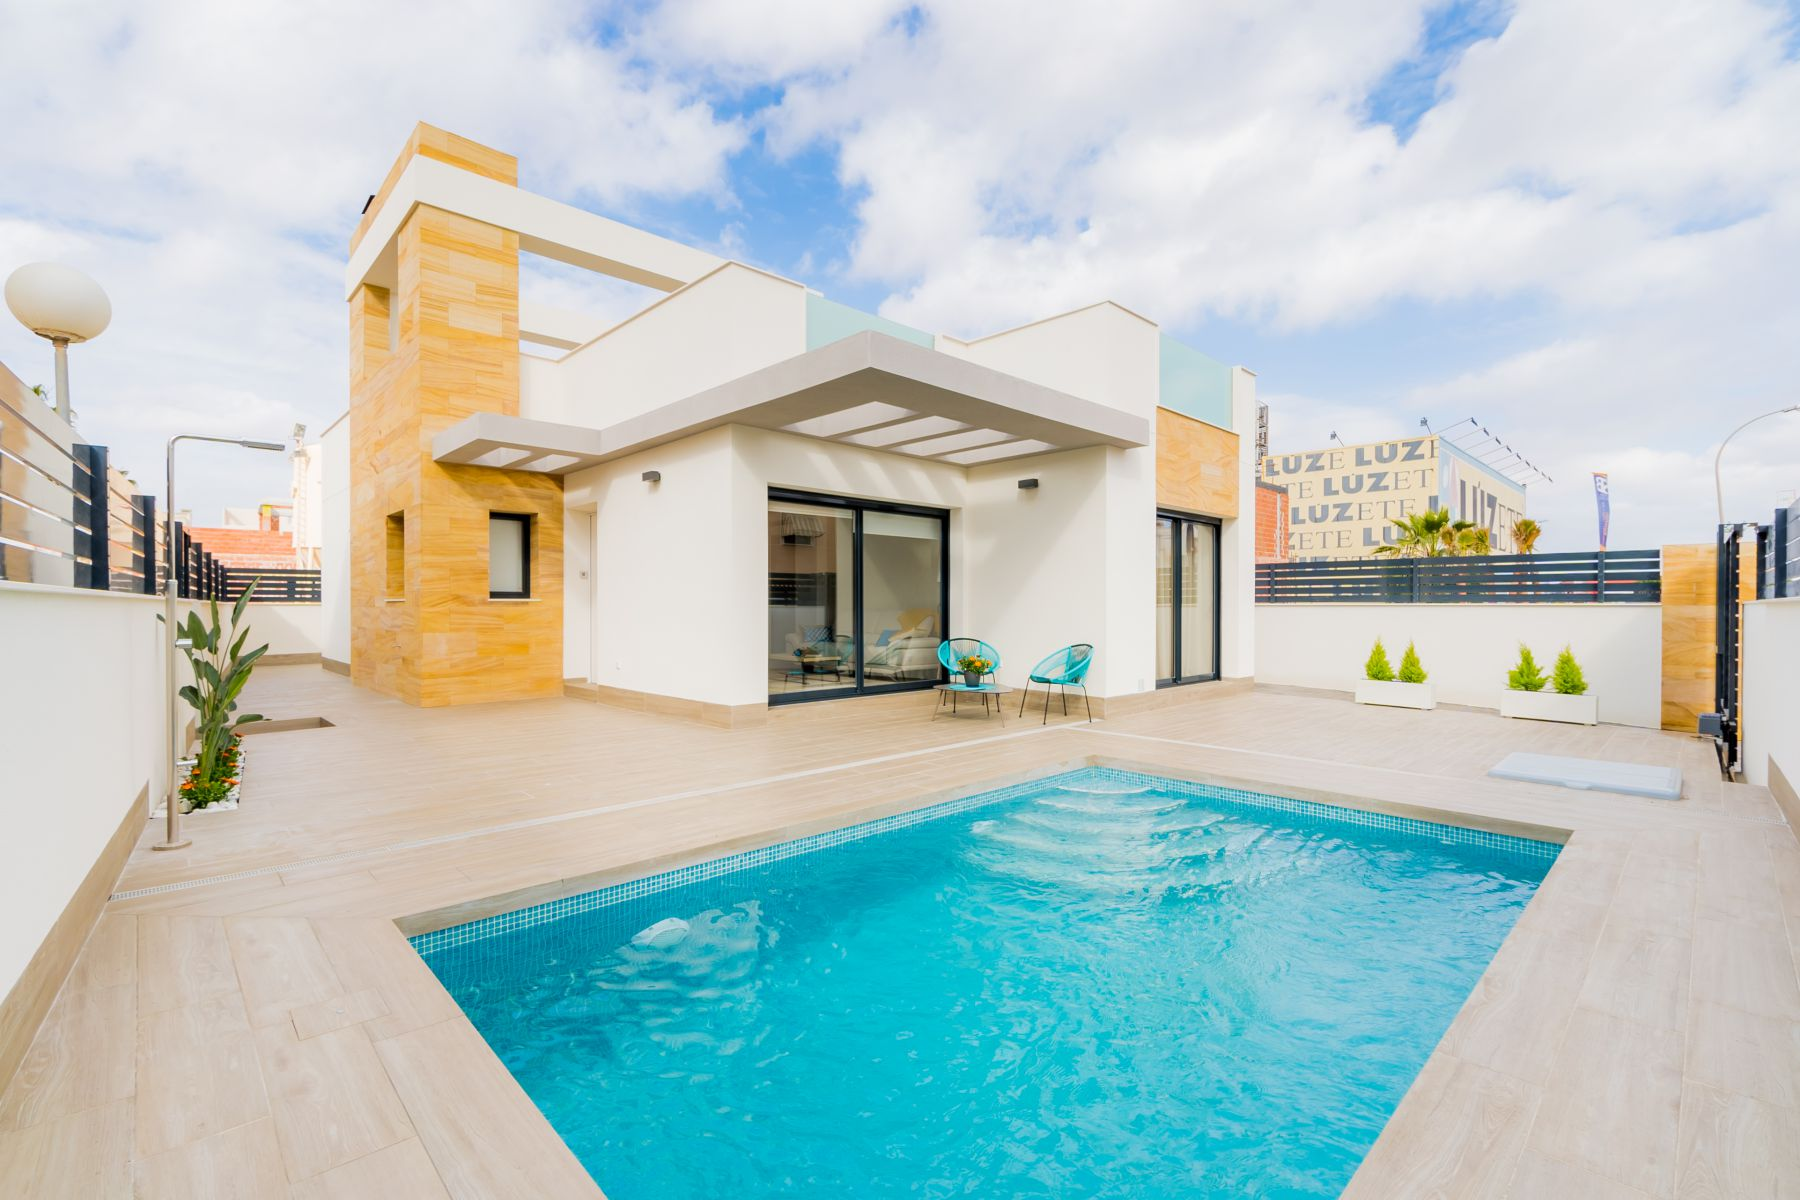 3 Bedrooms Villas With Swimming Pool For Sale in Torrevieja with Plot